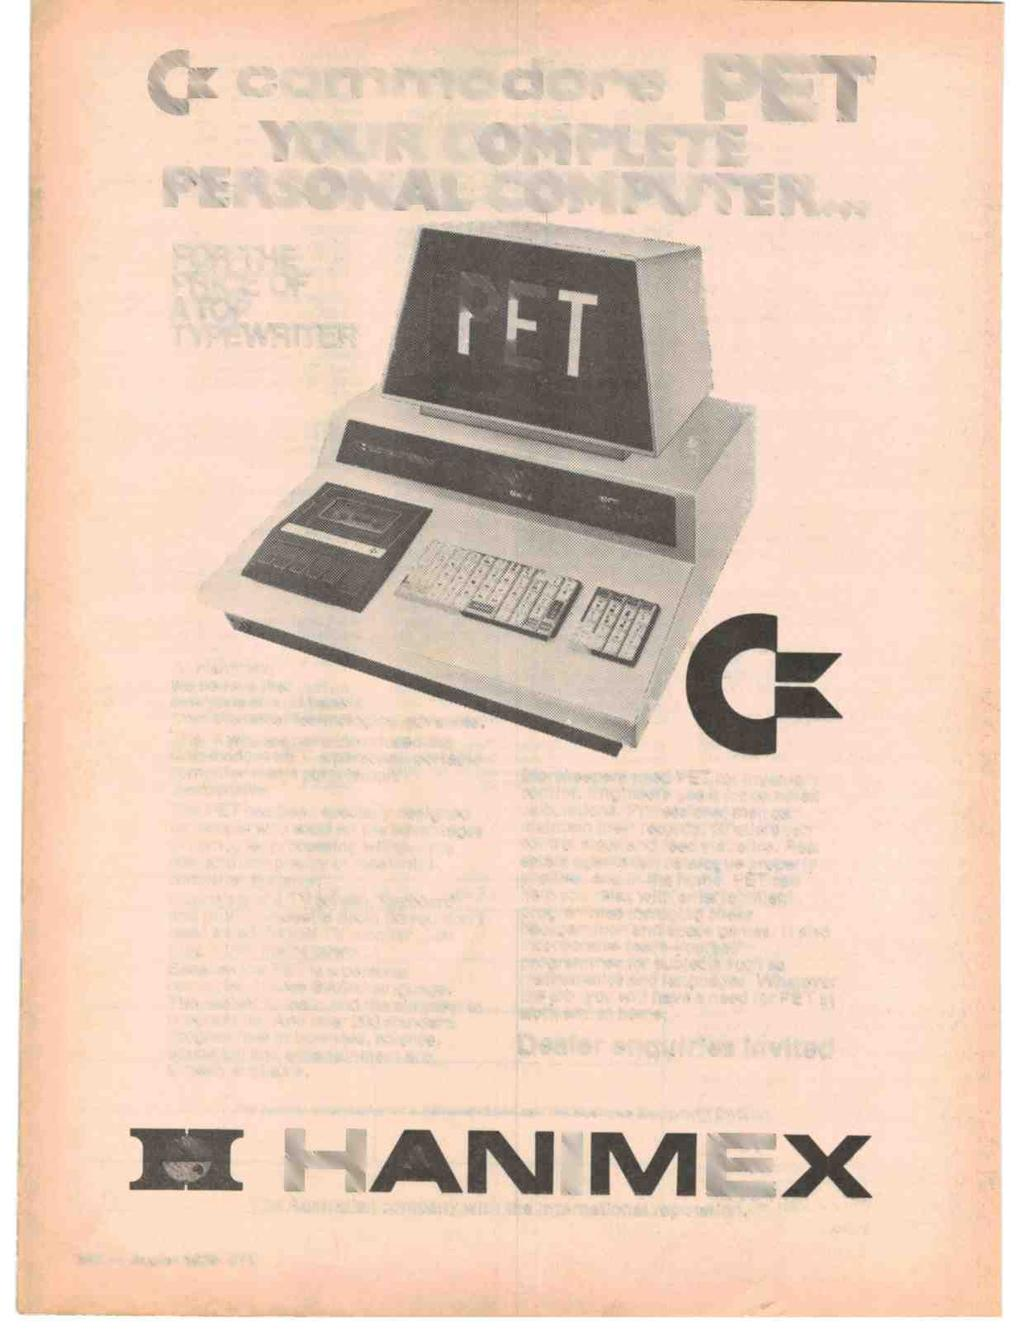 ";.i commodore PET YOUR COMPLETE -RSONAL CON PUTE R... FOR THE PRICE OF ATOP TYPEWRITER aey. "" ""-. F 4'."